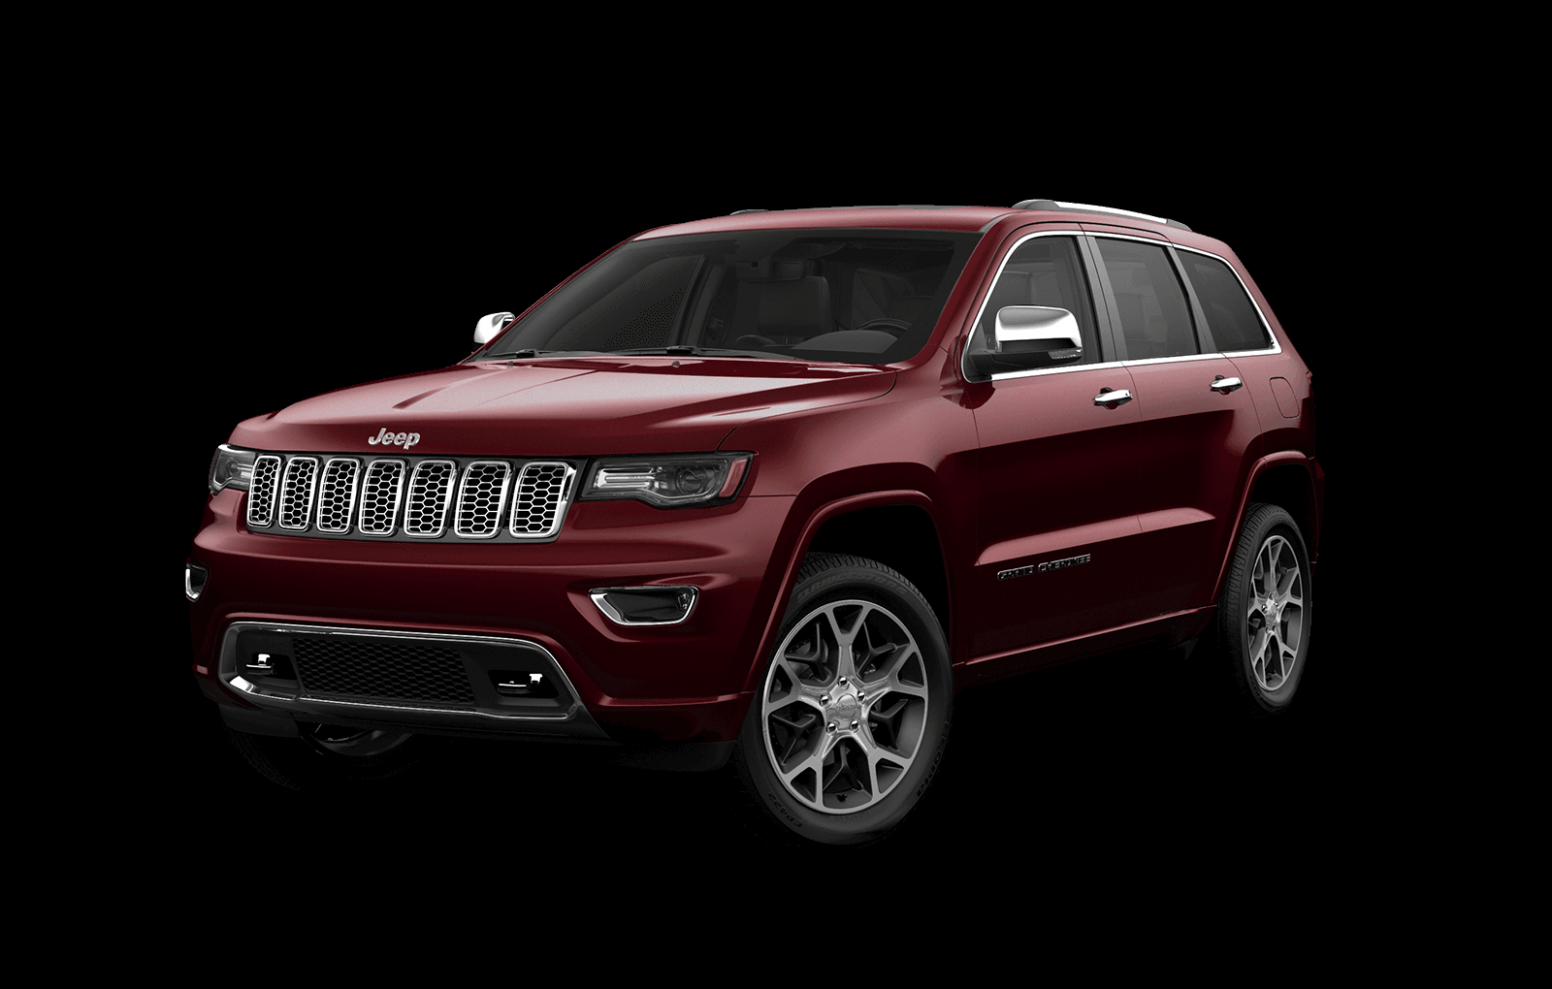 Jeep Grand Cherokee Price Design And Review In 2020 Jeep Grand